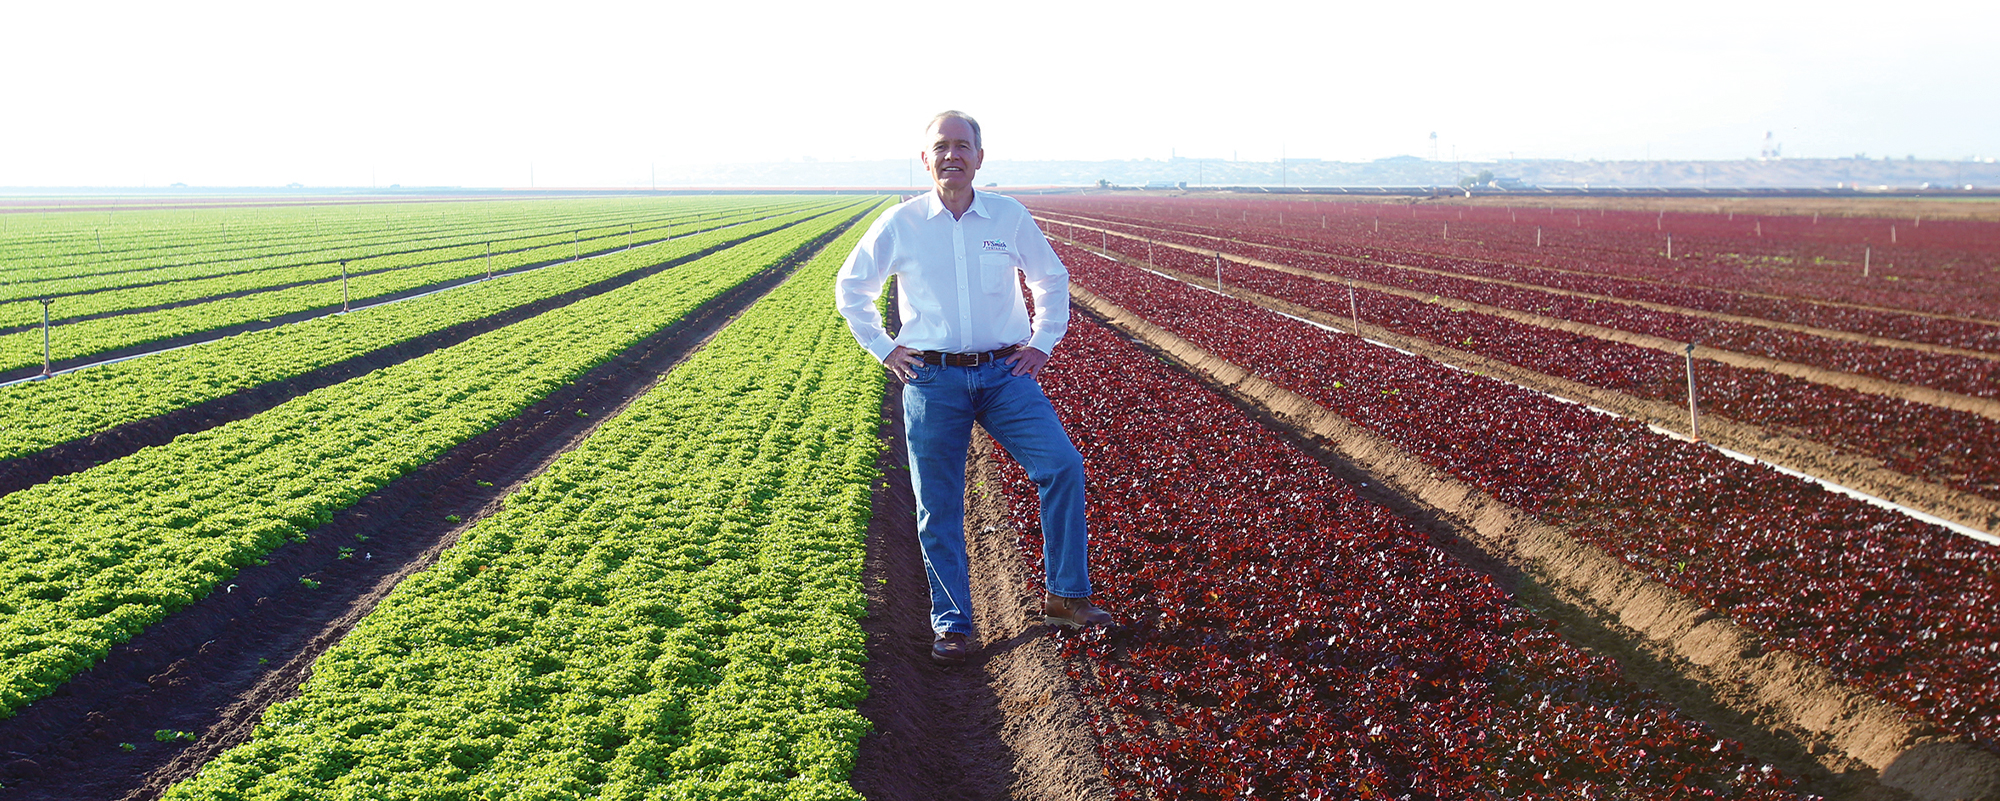 Vic oversees farming, packing, and cooling operations spread across a diverse set of categories and an impressive swath of the Southwest—growing on over 30,000 acres, with operations throughout both the United States and Mexico